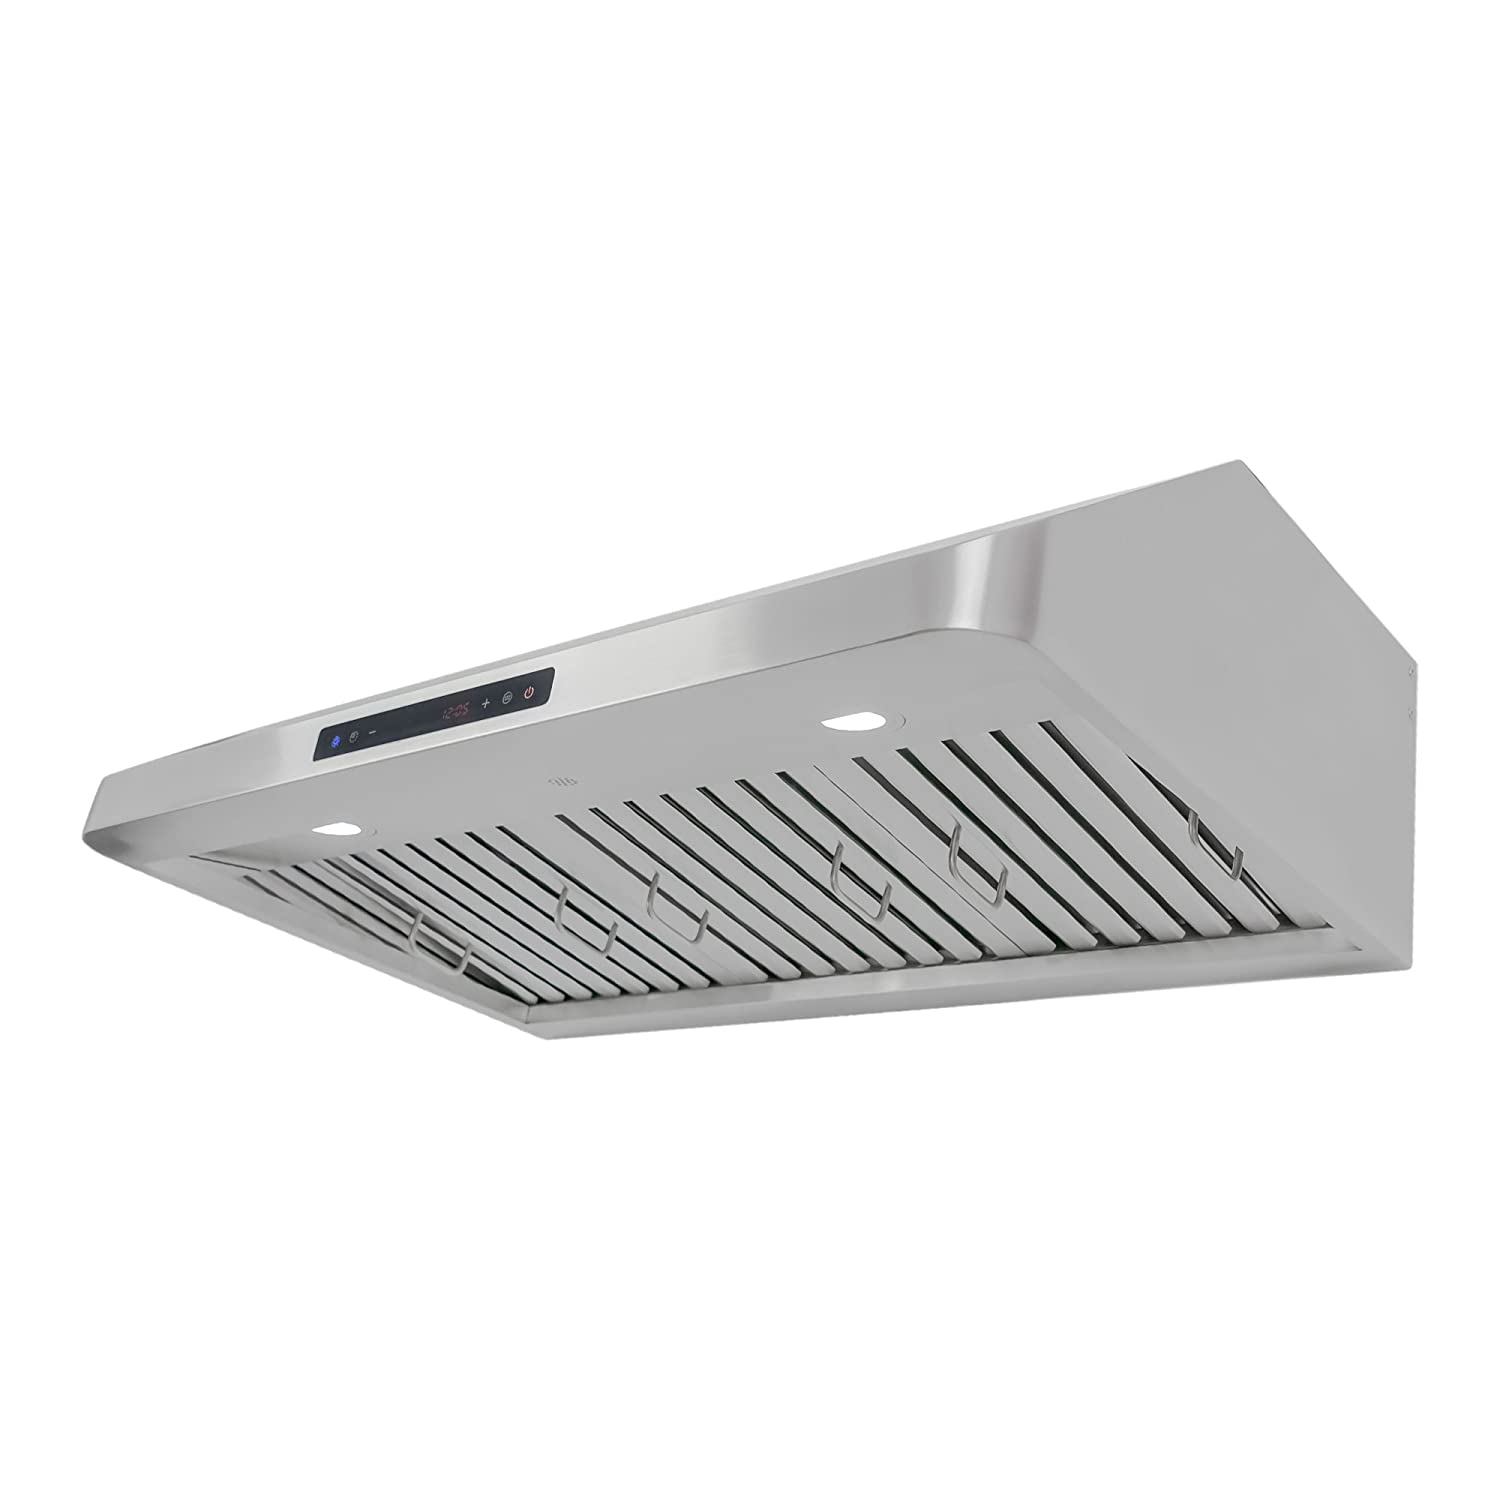 Cosmo QS90 36-in Under-Cabinet RangeHood 900-CFM Ducted Ductless Convertible Duct , Wireless Kitchen Stove Vent with LED Light , 4 Speed Exhaust , Fan Timer, Permanent-Filter Stainless Steel